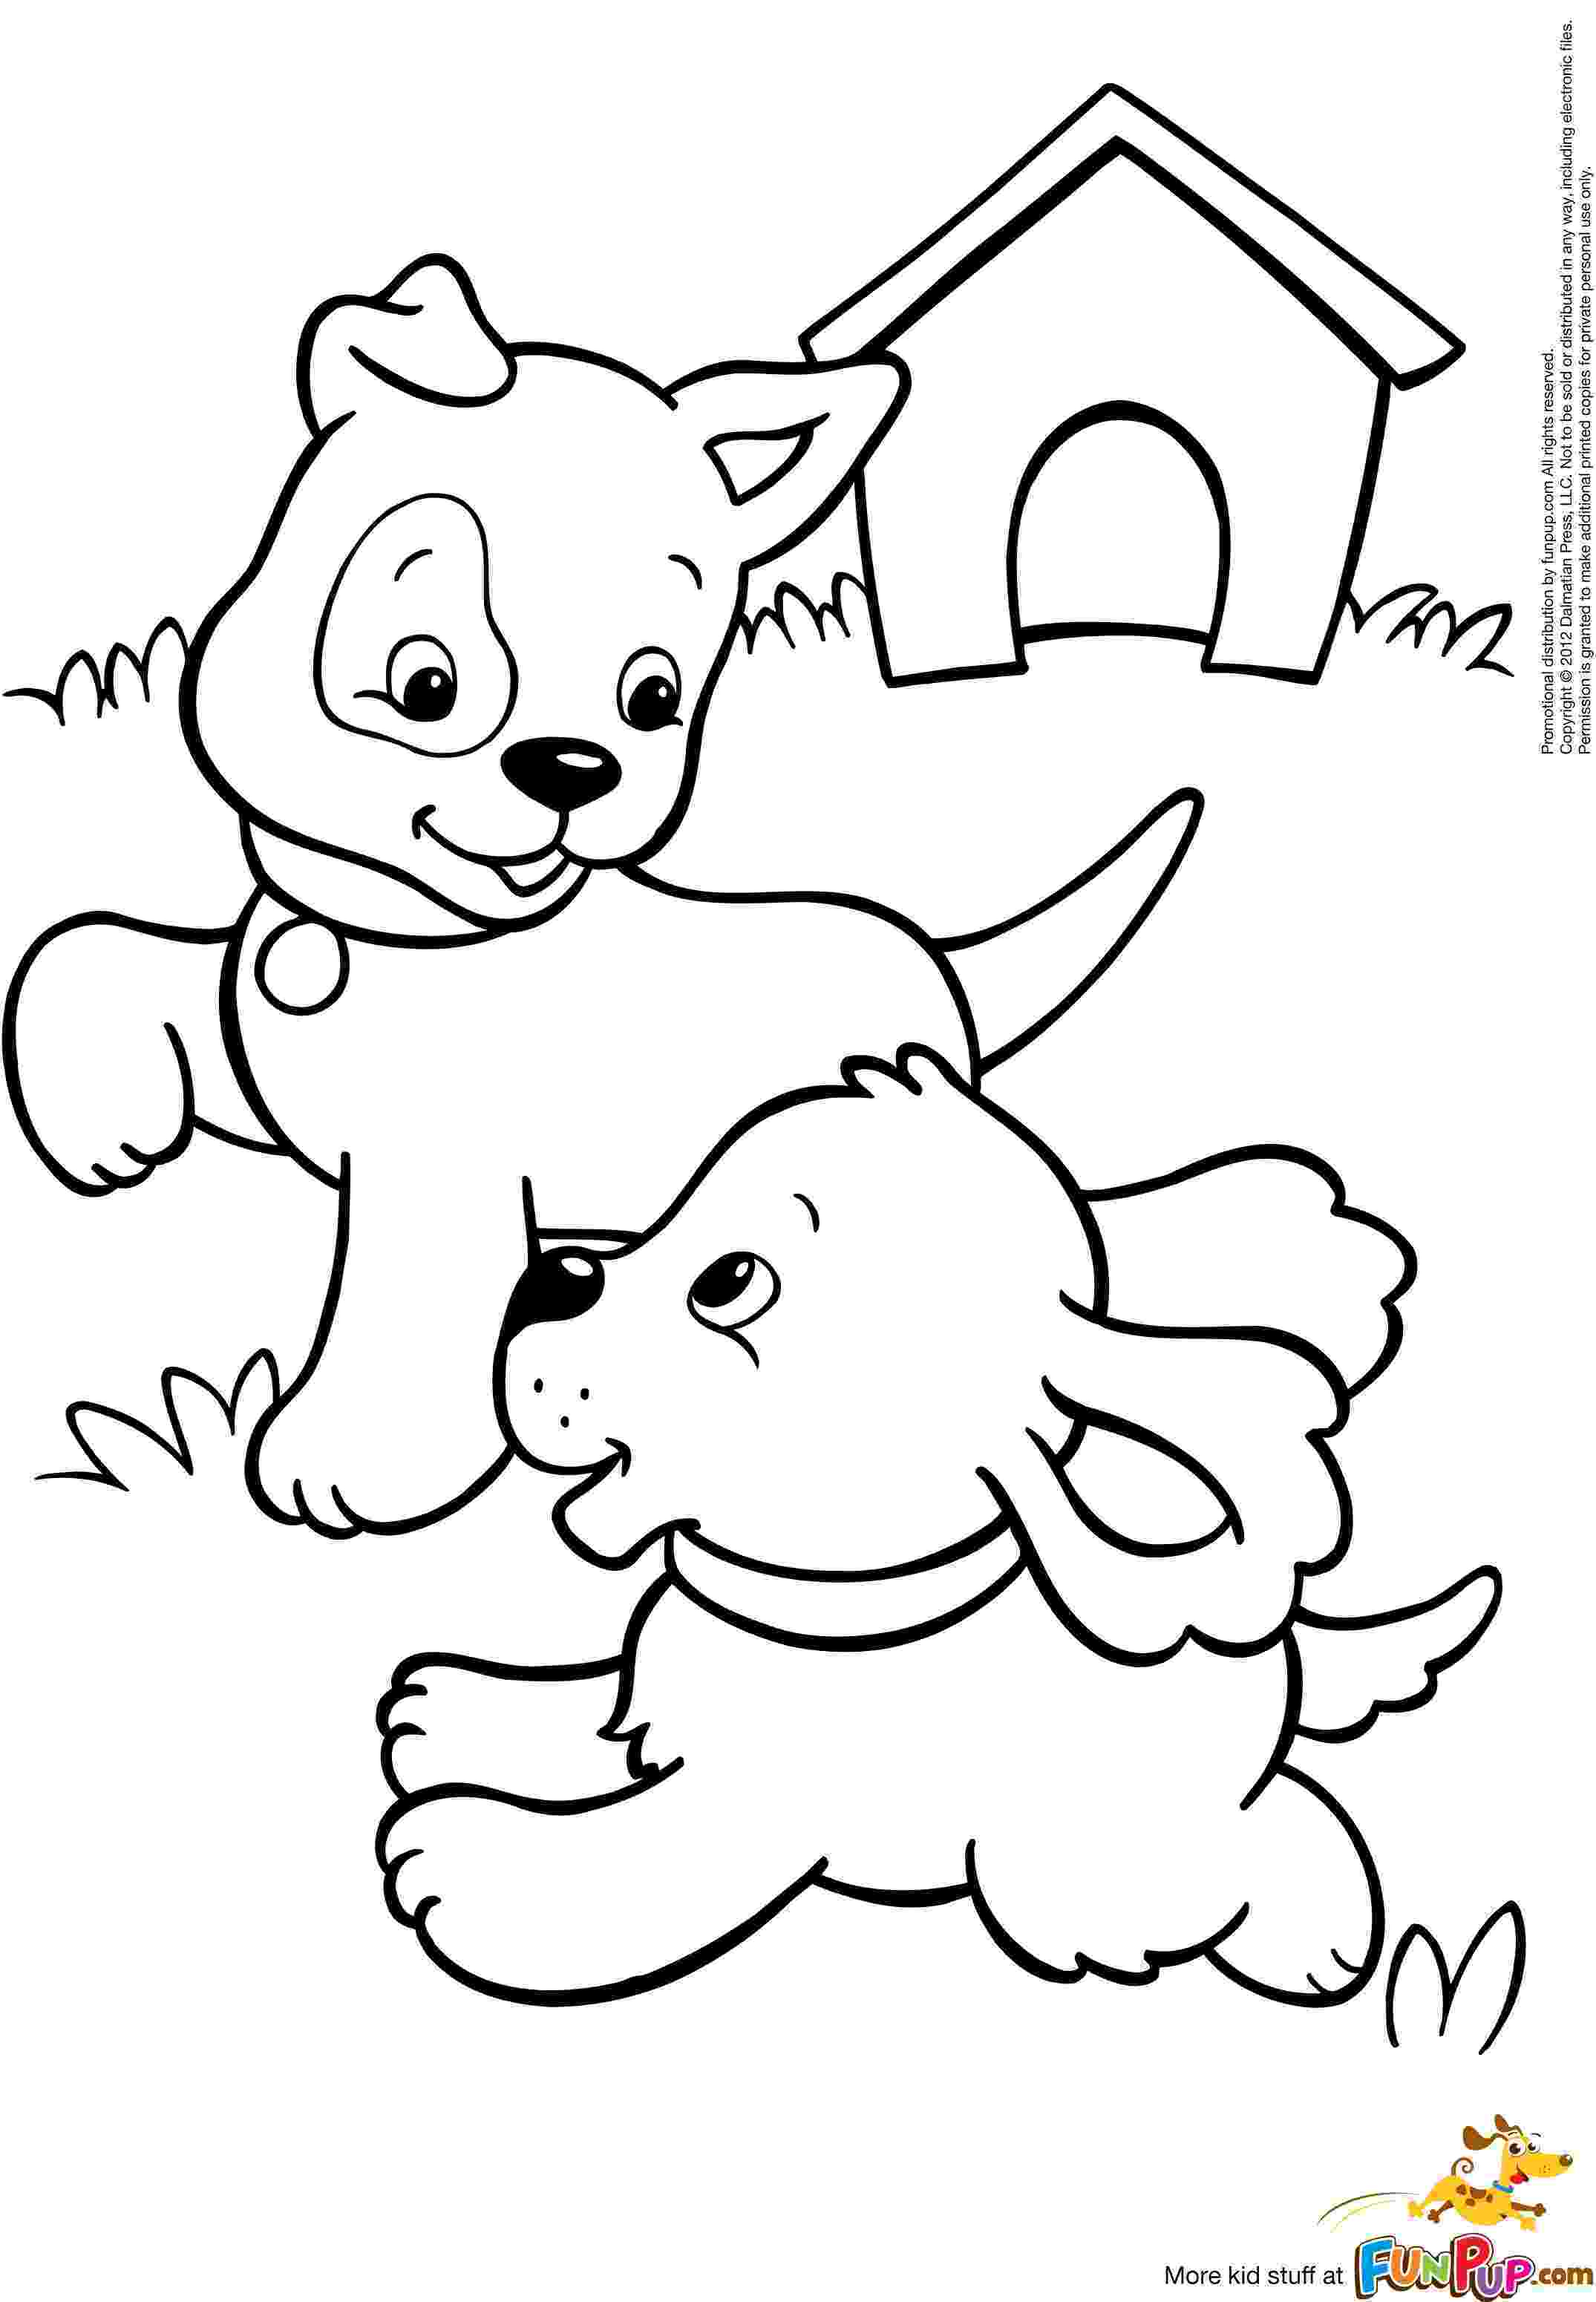 dogs and puppies coloring pages free printable dog coloring pages for kids coloring puppies and pages dogs